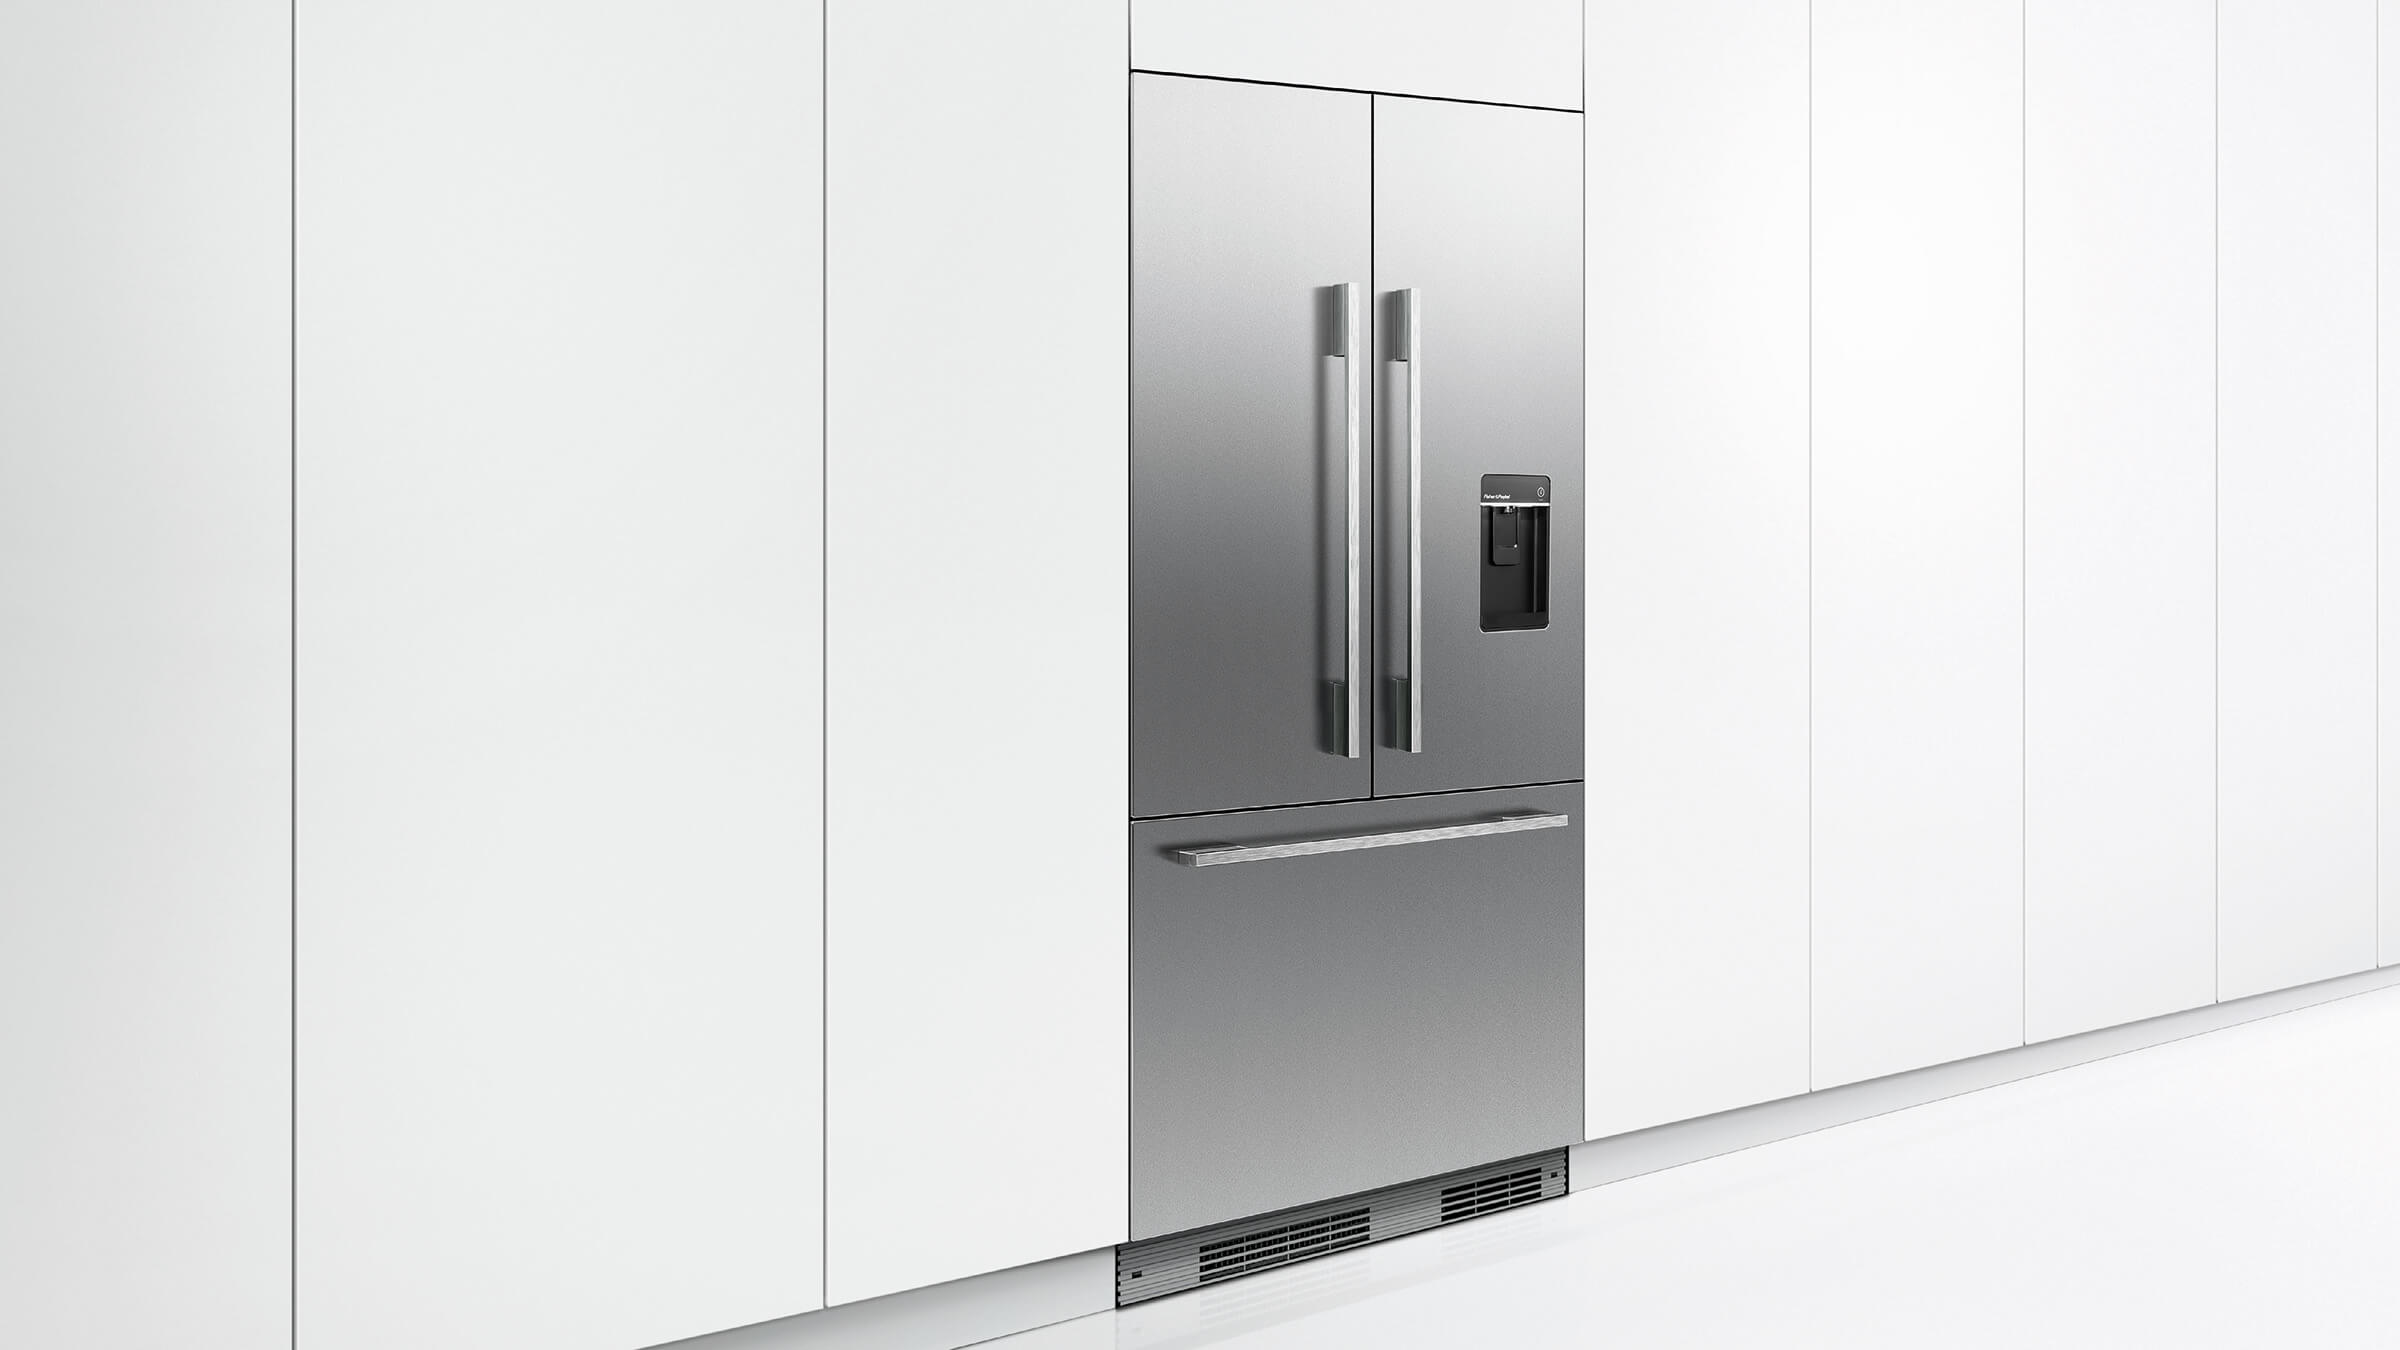 Fisher and paykel french door fridge reviews - No More Gaps